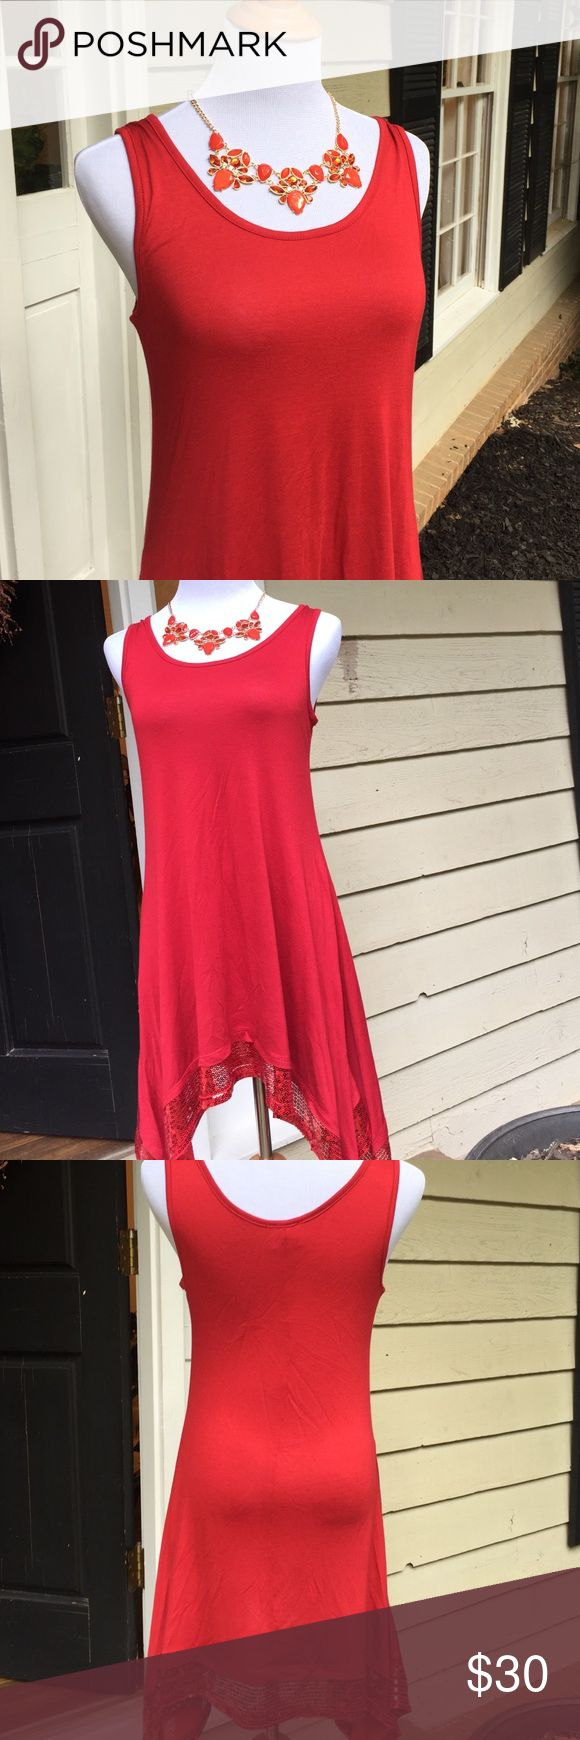 ⚡️sale! Red tunic dress with red sequins. NWOT Pretty red tunic with sequinned hem. Side pockets to carry your lipstick!  Handkerchief hem. Dresses Mini